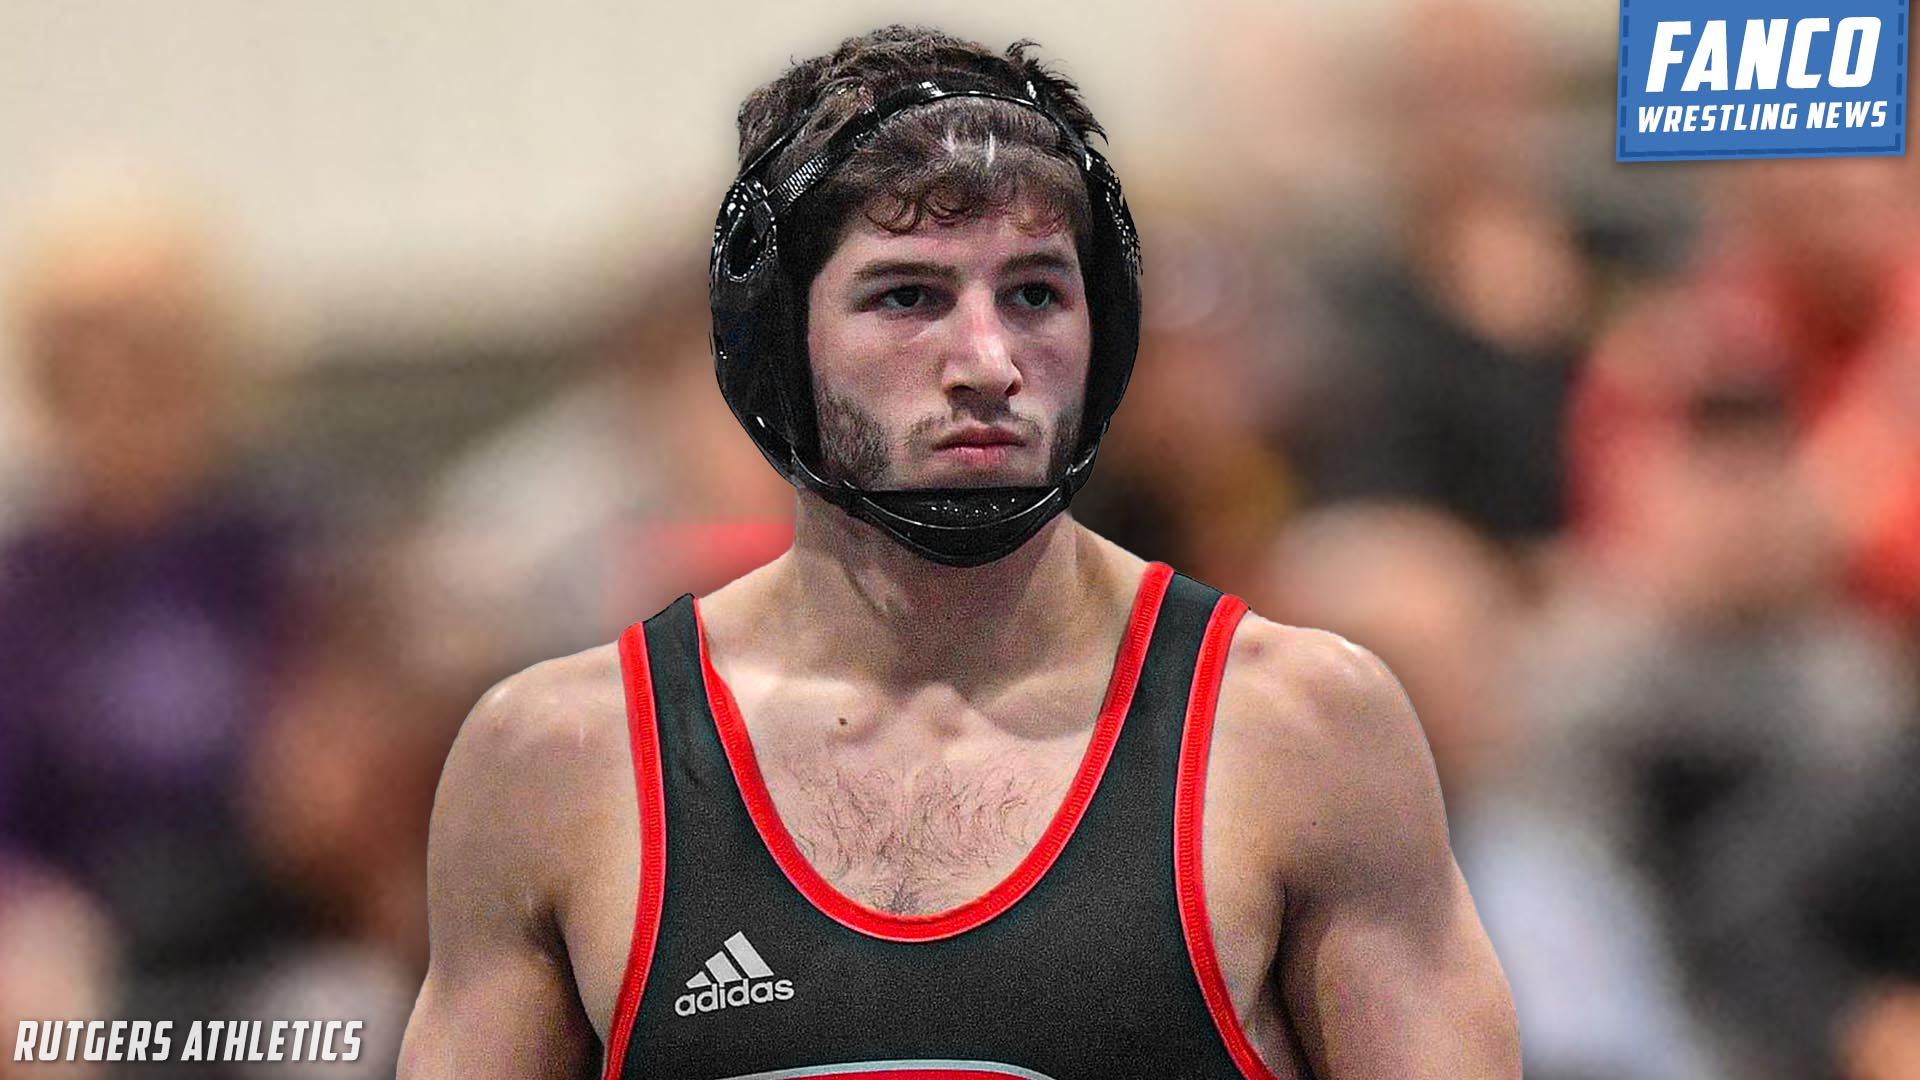 You are currently viewing Rutgers Hires NCAA Champion Anthony Ashnault